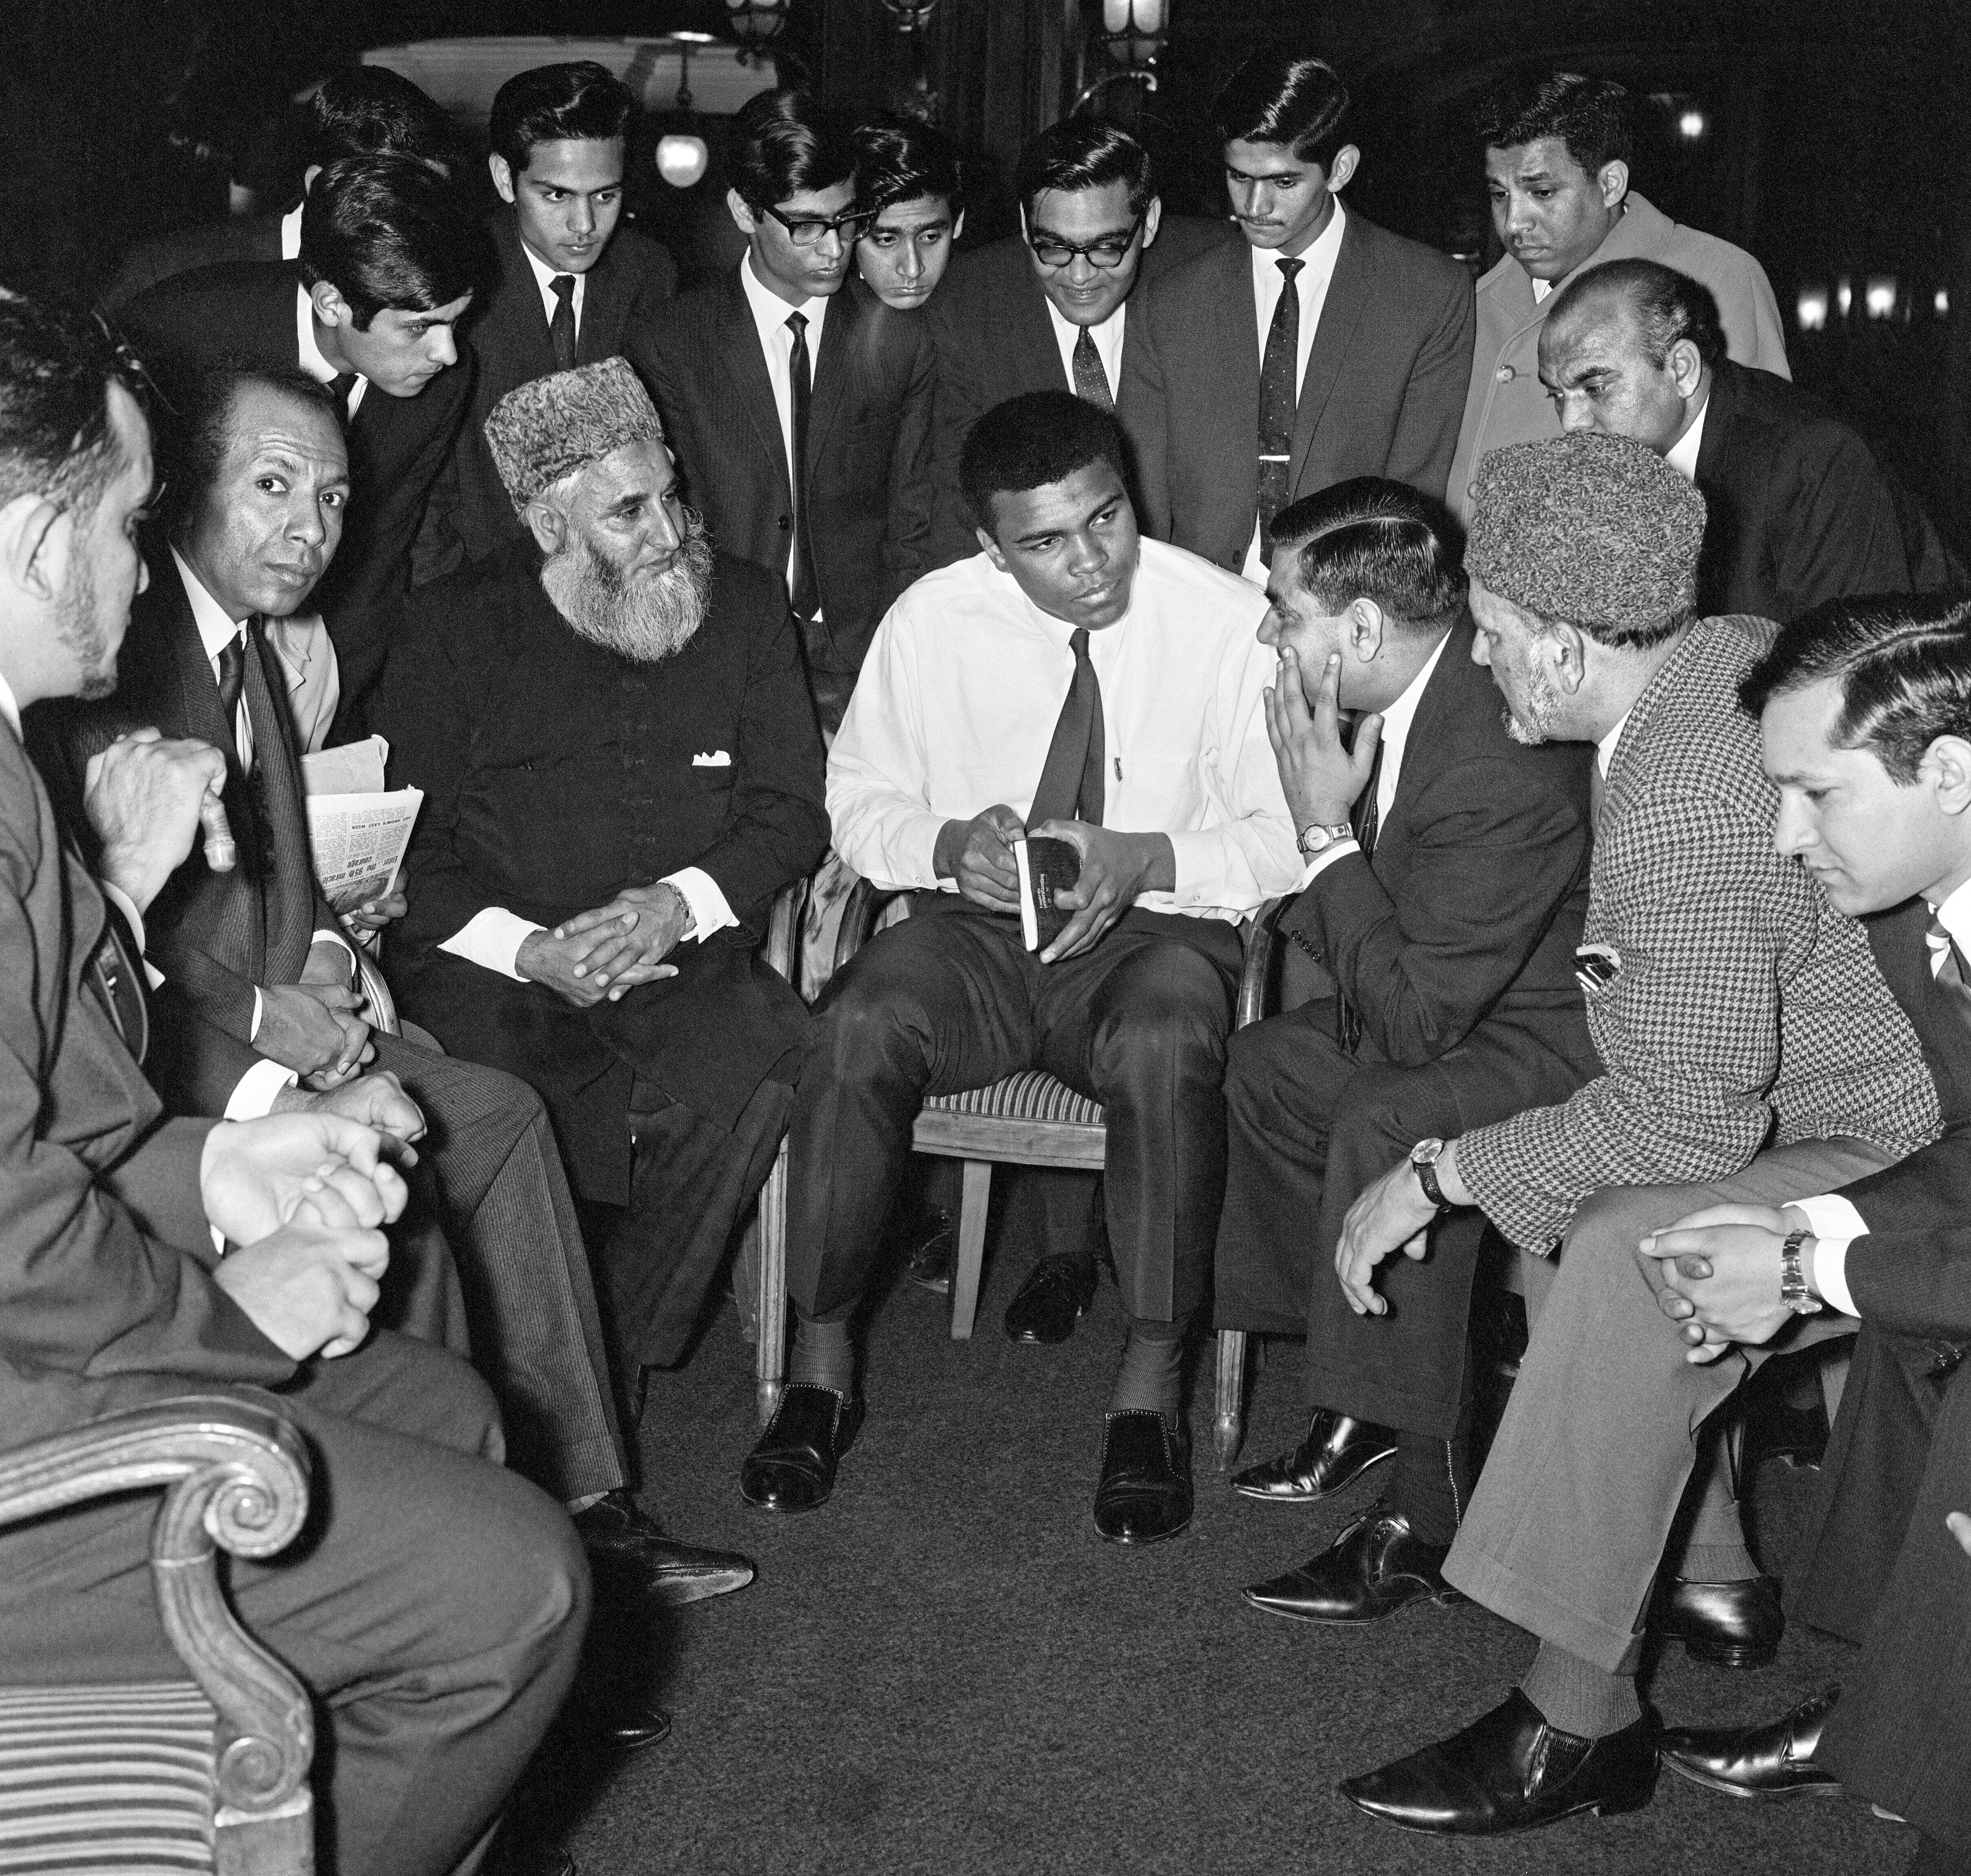 Muhammad Ali, who changed his name when he converted to the Nation of Islam, speaks to Muslims in London in May 1966. File photo by Action Images/MSI via Reuters